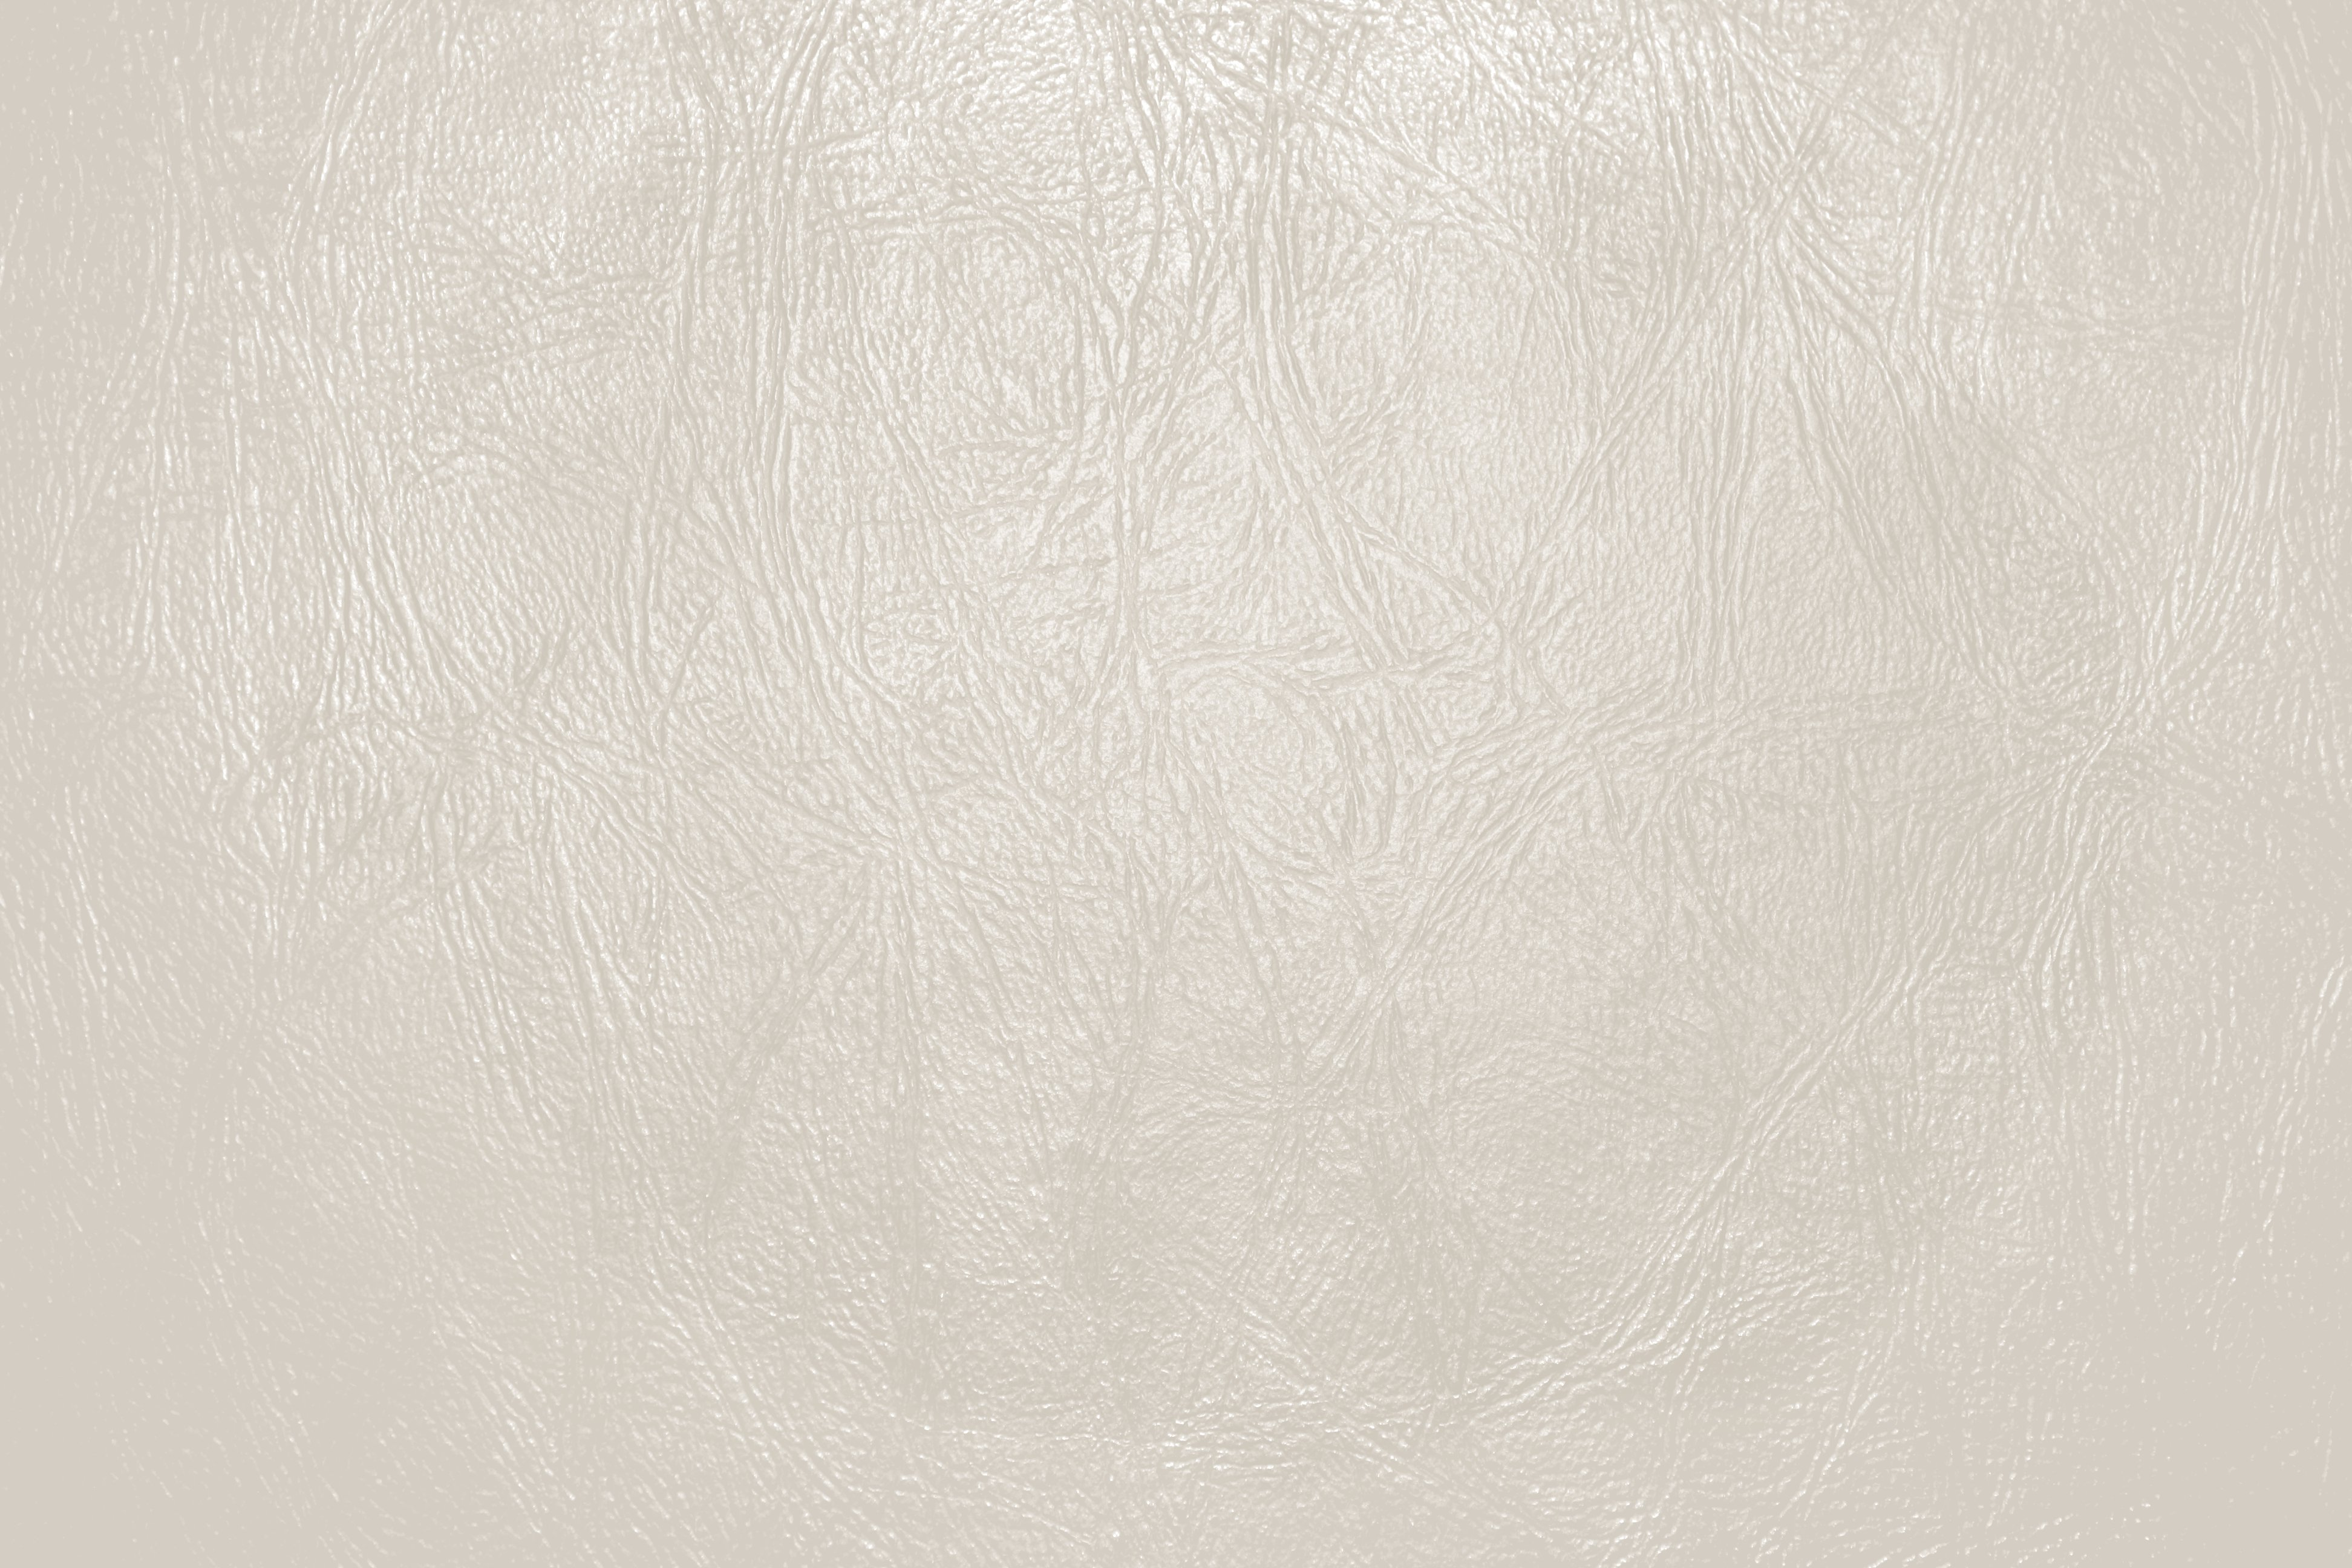 Ivory Colored Leather Close Up Texture Picture Free